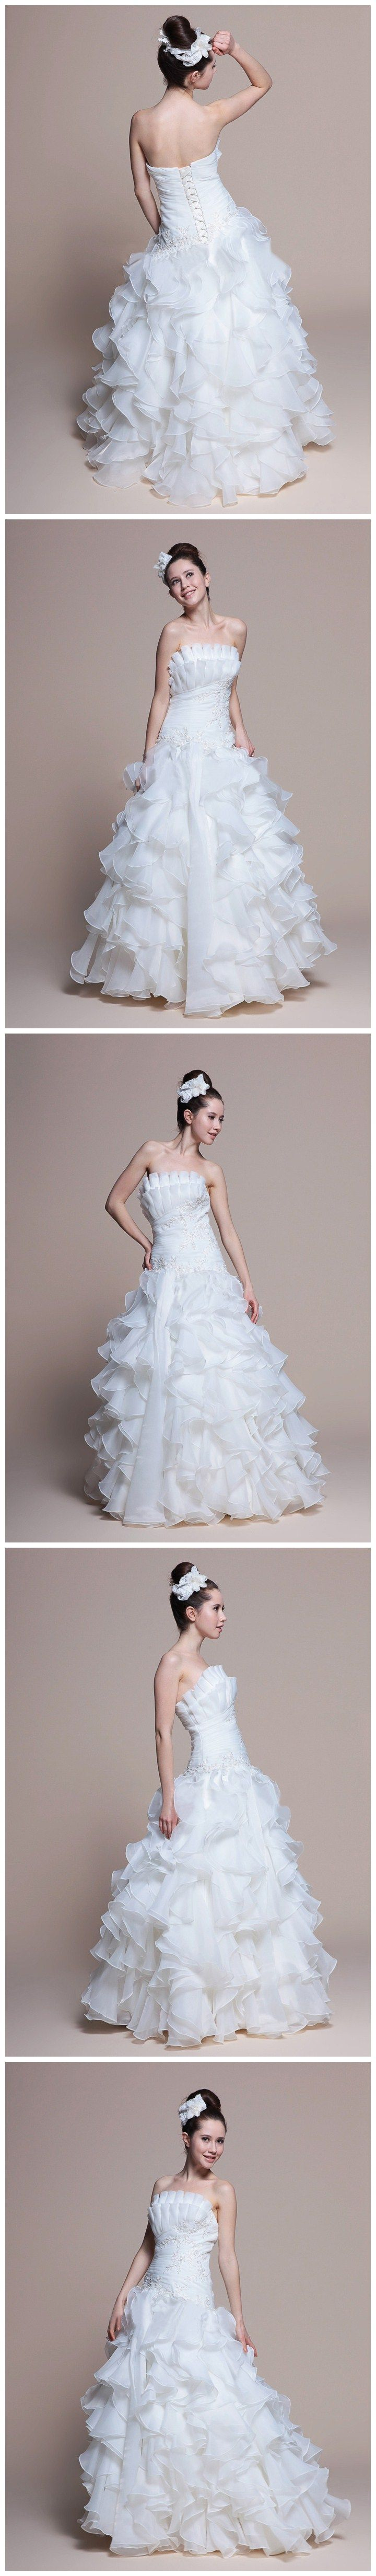 Wedding dress boxing   best Wedding images on Pinterest  Gown wedding Homecoming